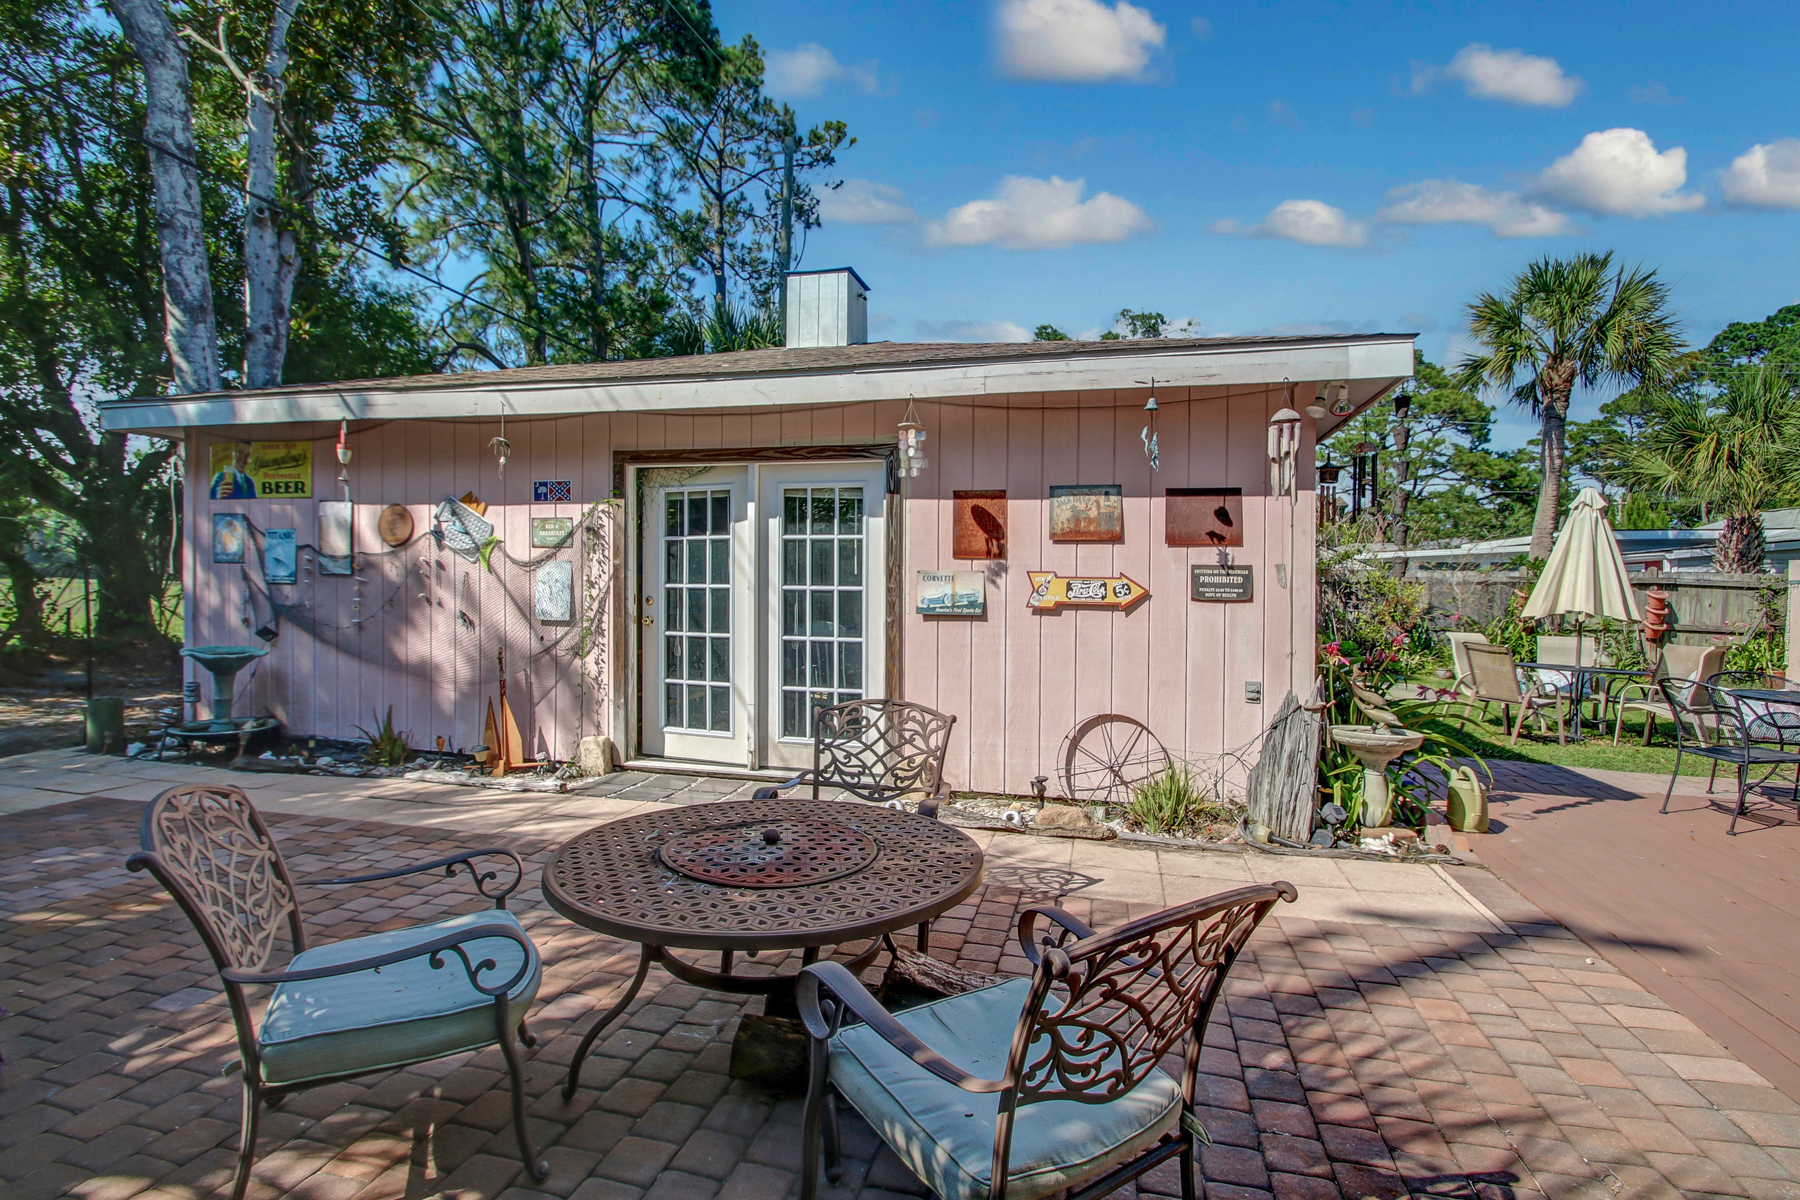 Single Family Home for Sale at Horsepen Cottages 119 Lewis Avenue Tybee Island, Georgia, 31328 United States